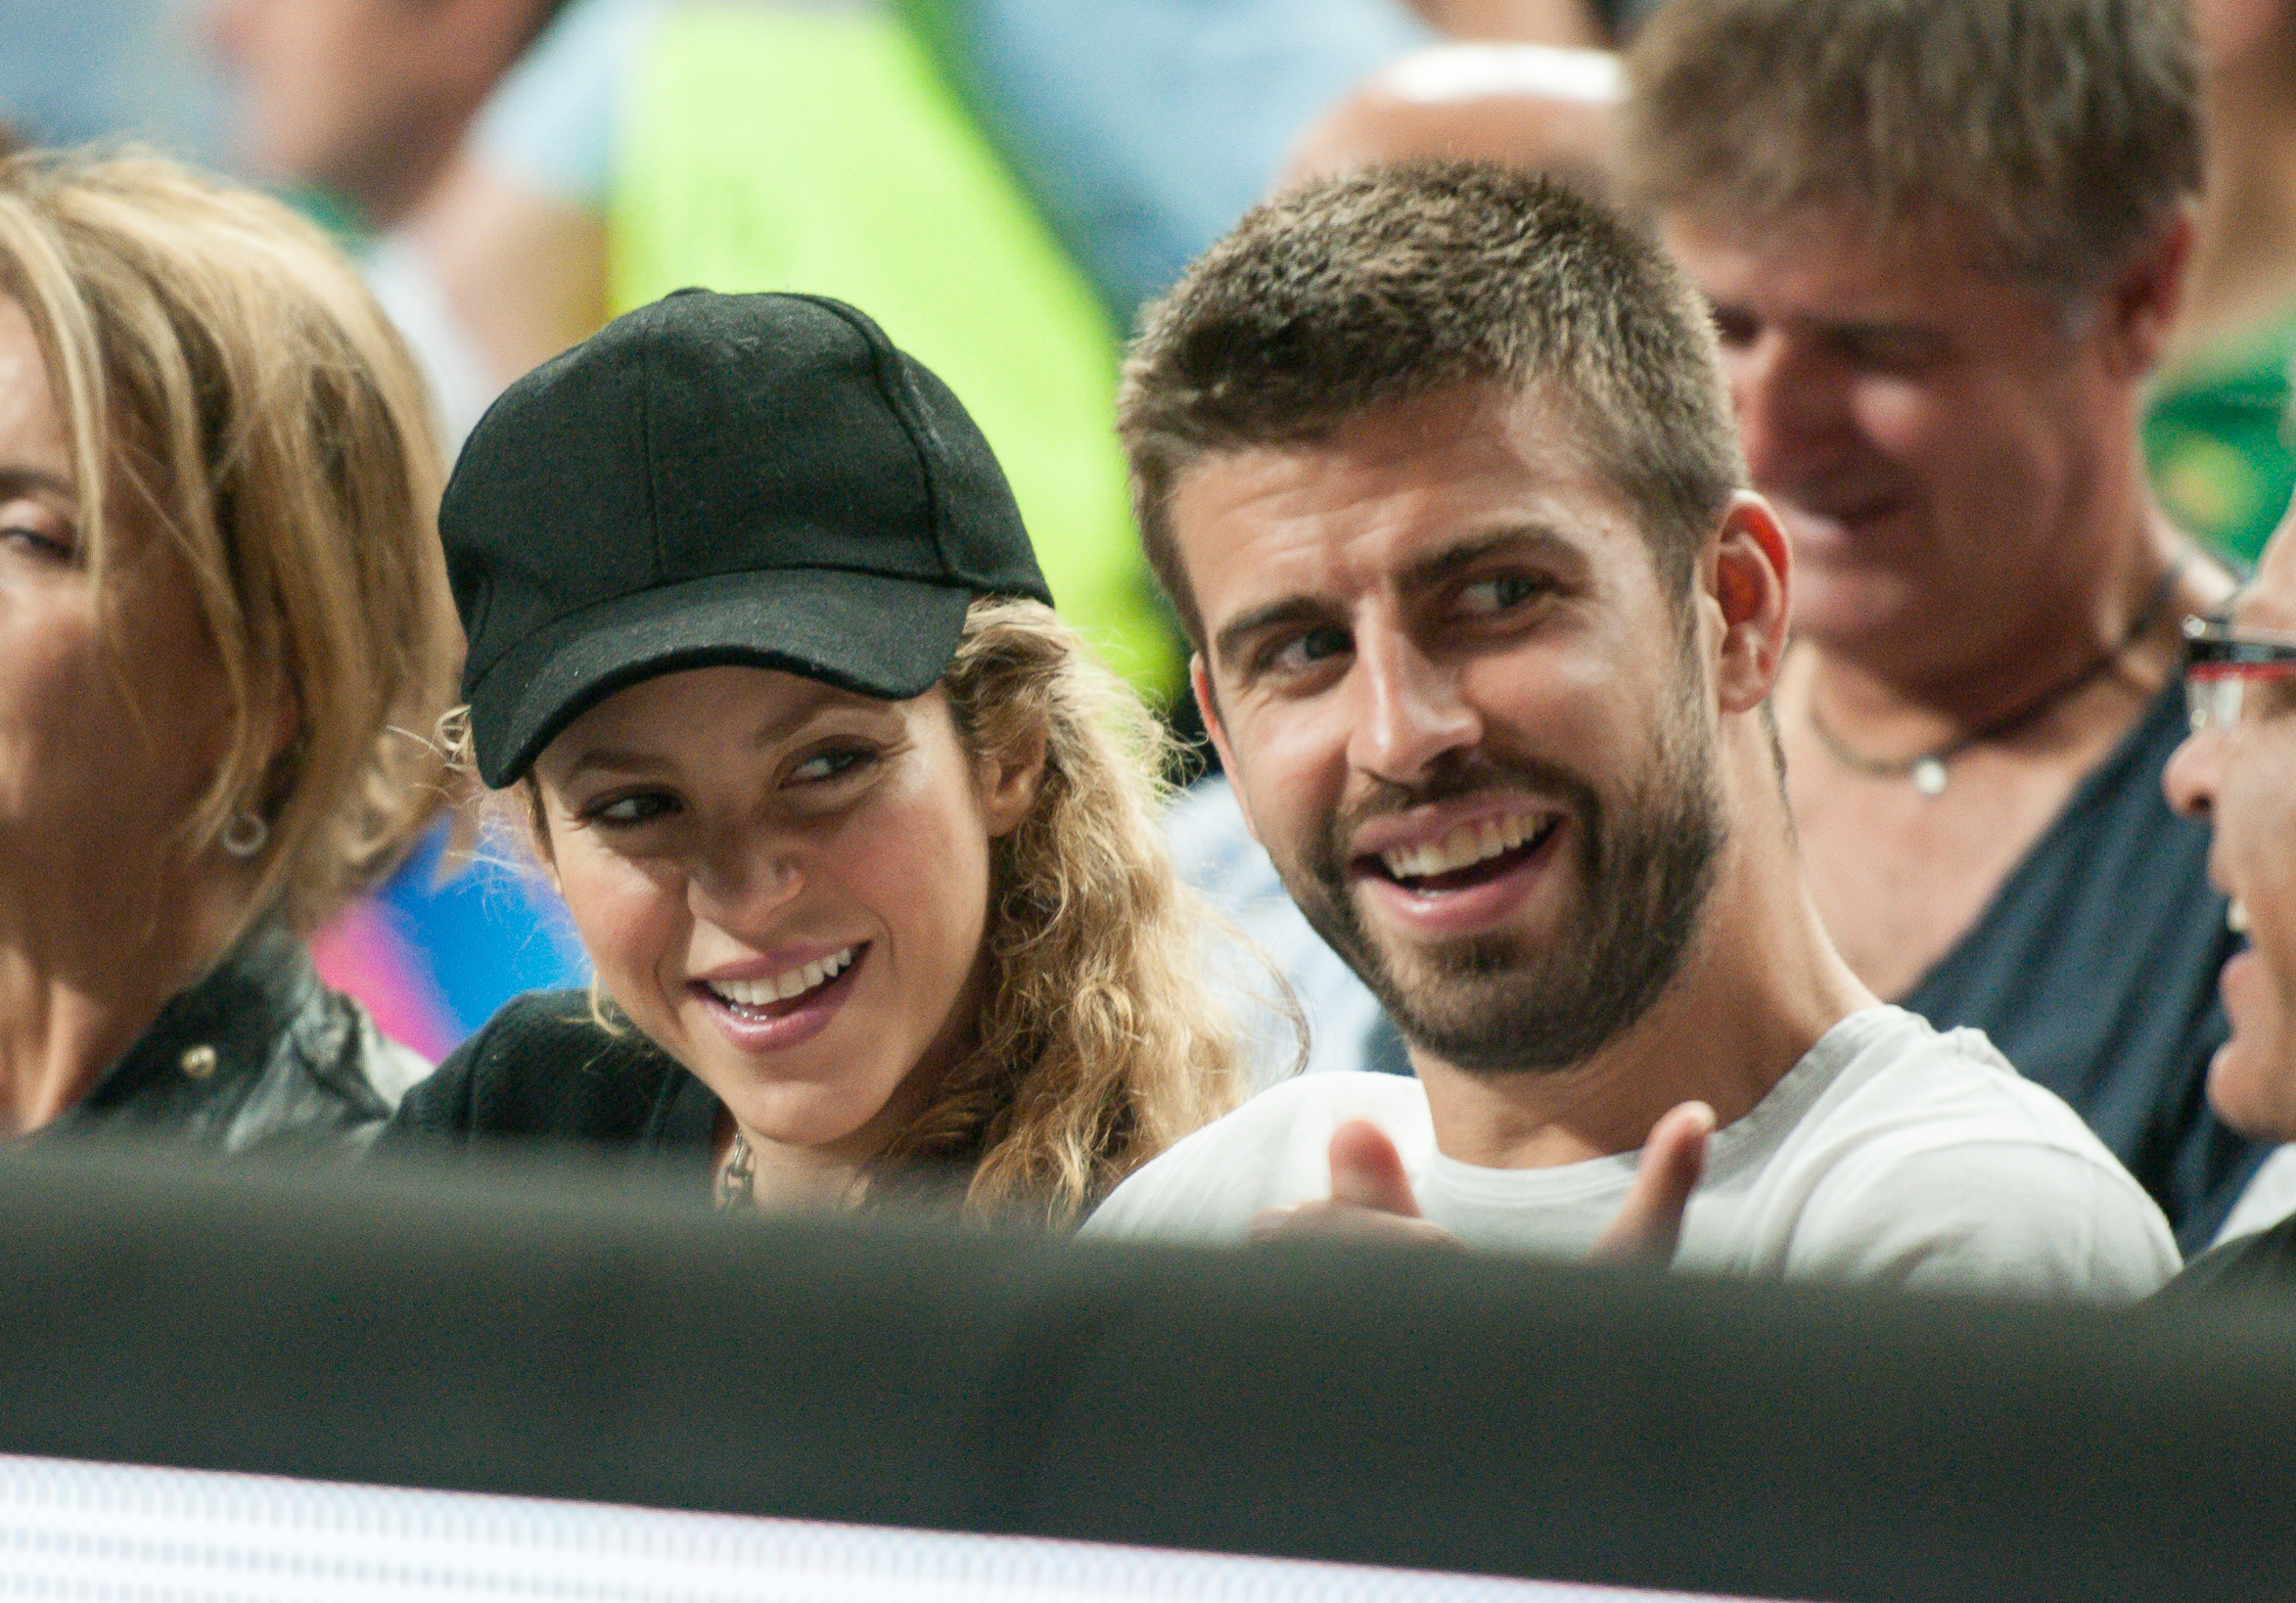 Shakira and Gerard Pique attend the USA v Slovenia game at the Basketball World Cup 2014 in Barcelona on Sept. 9, 2014.